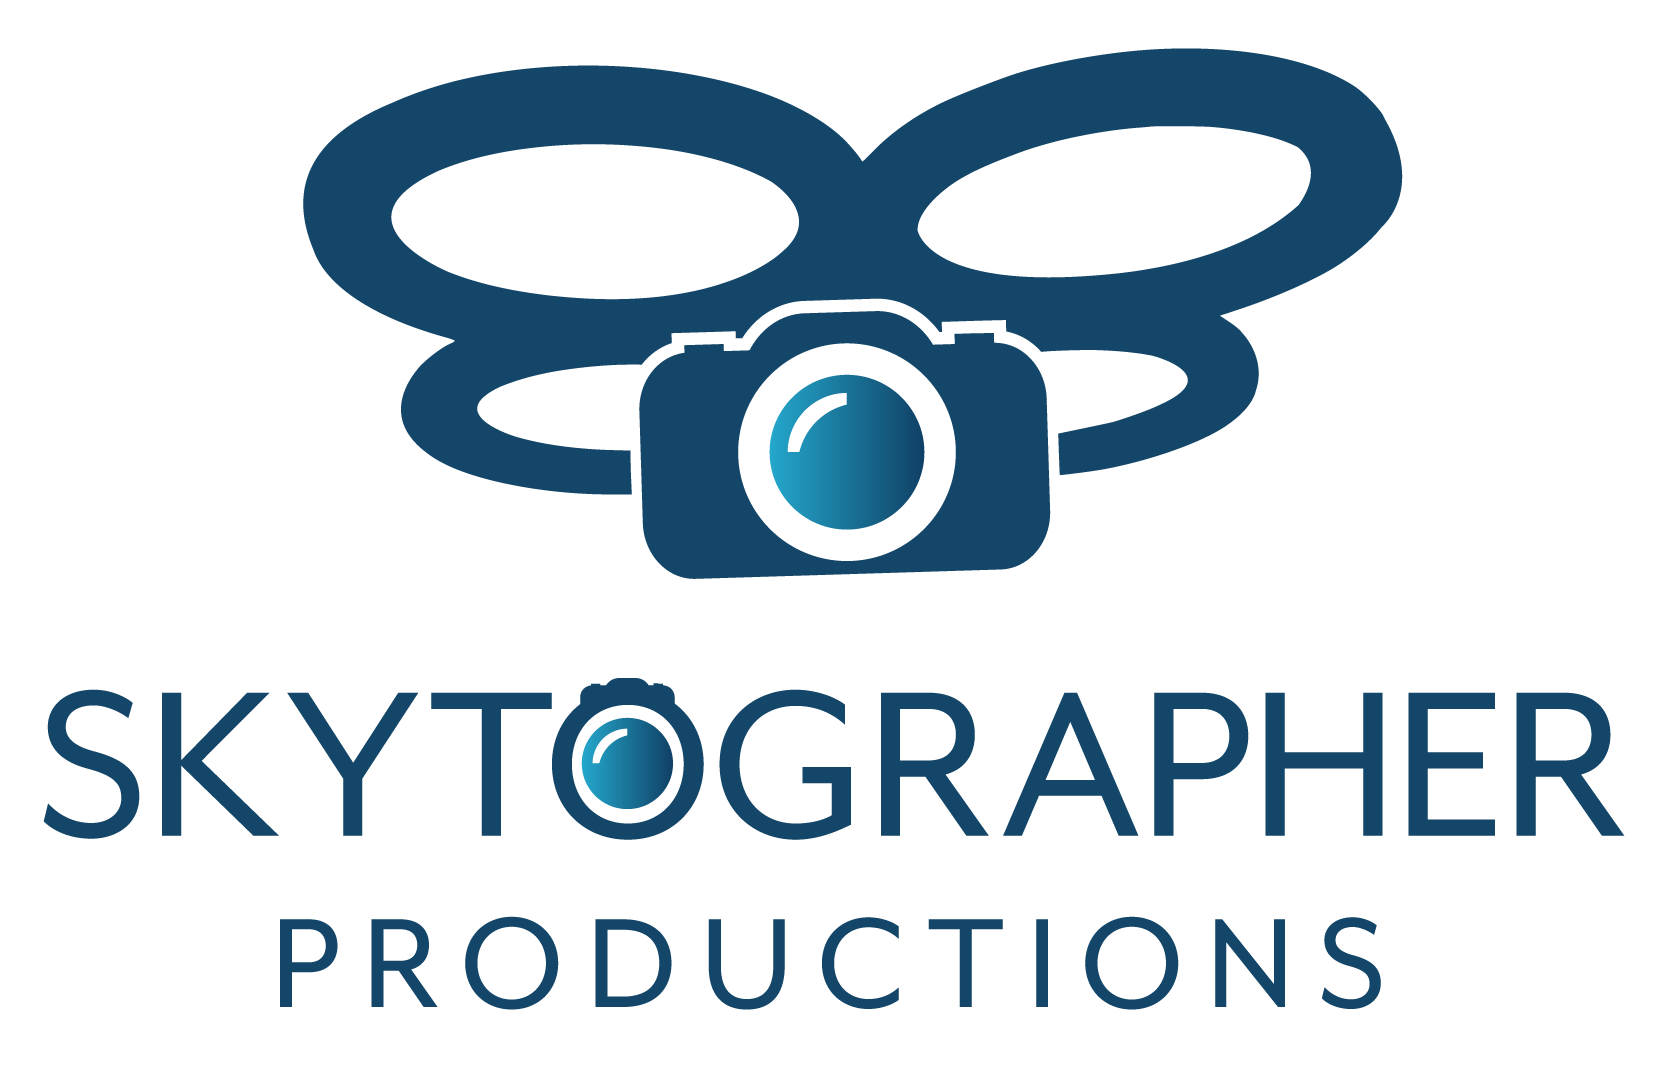 skytographer-color--logo-transparent.png small.png